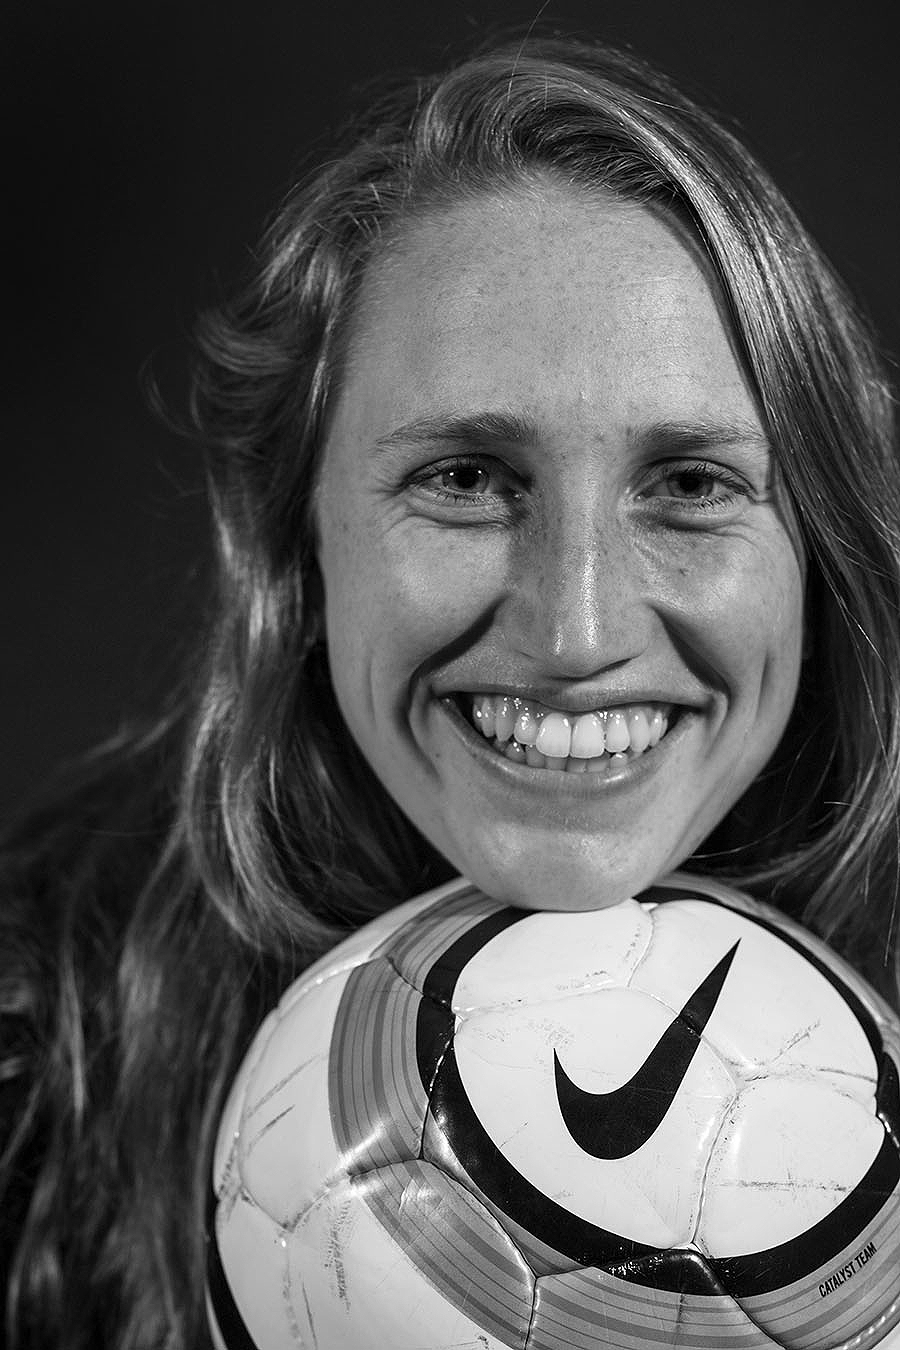 Brian_Schoenauer_photography_portraits_headshot_athletics_soccer_joy_happiness_love_black_and_white